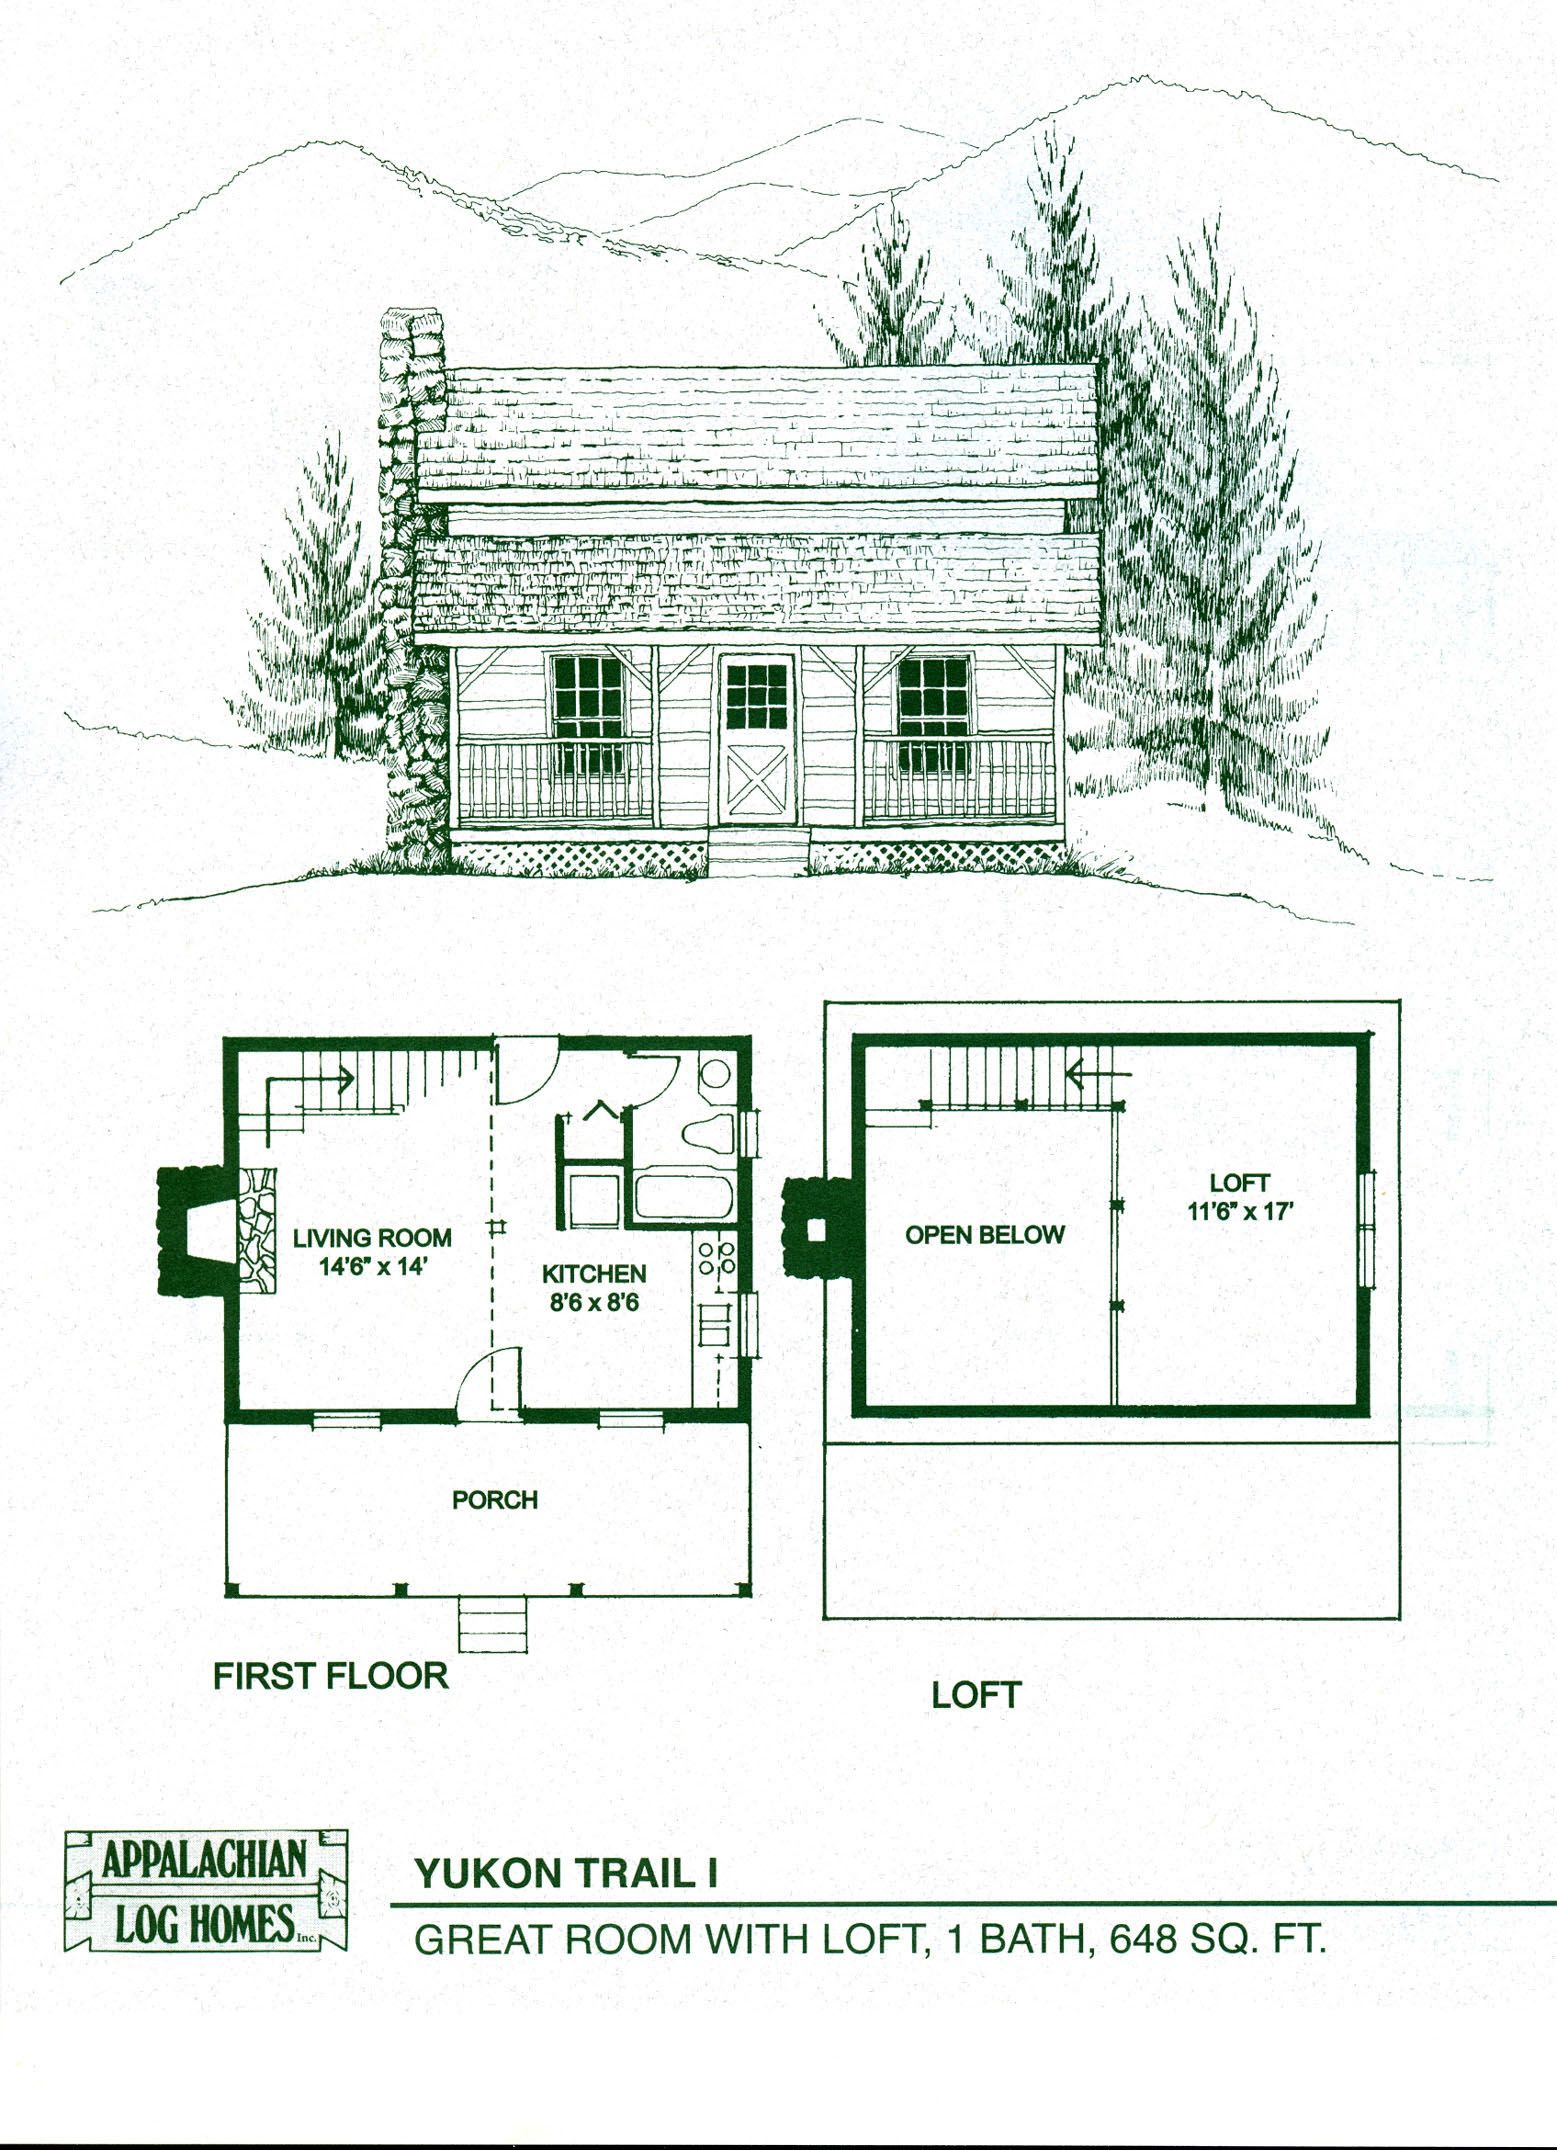 Log home floor plans log cabin kits appalachian log for Log house plans free